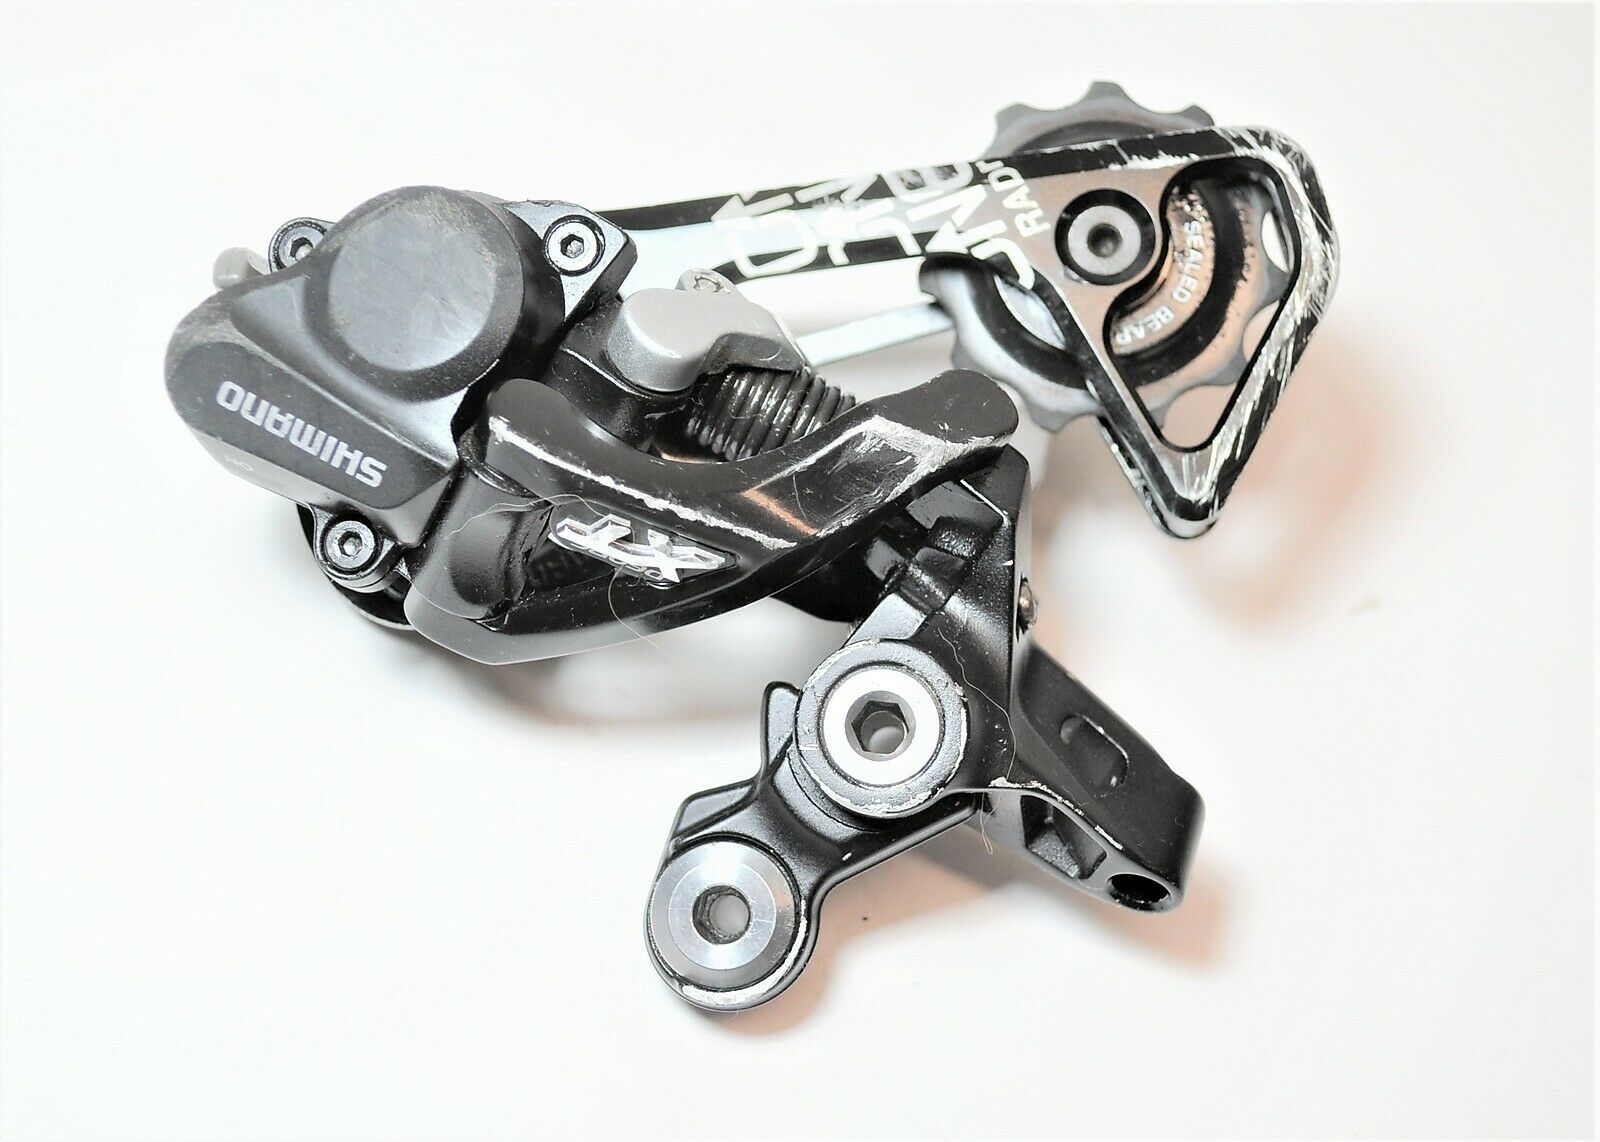 SHIMANO DEORE XT DYNA SYS BICYCLE 10 SPD GS MEDIUM CAGE REAR DERAILLEUR RD-M786